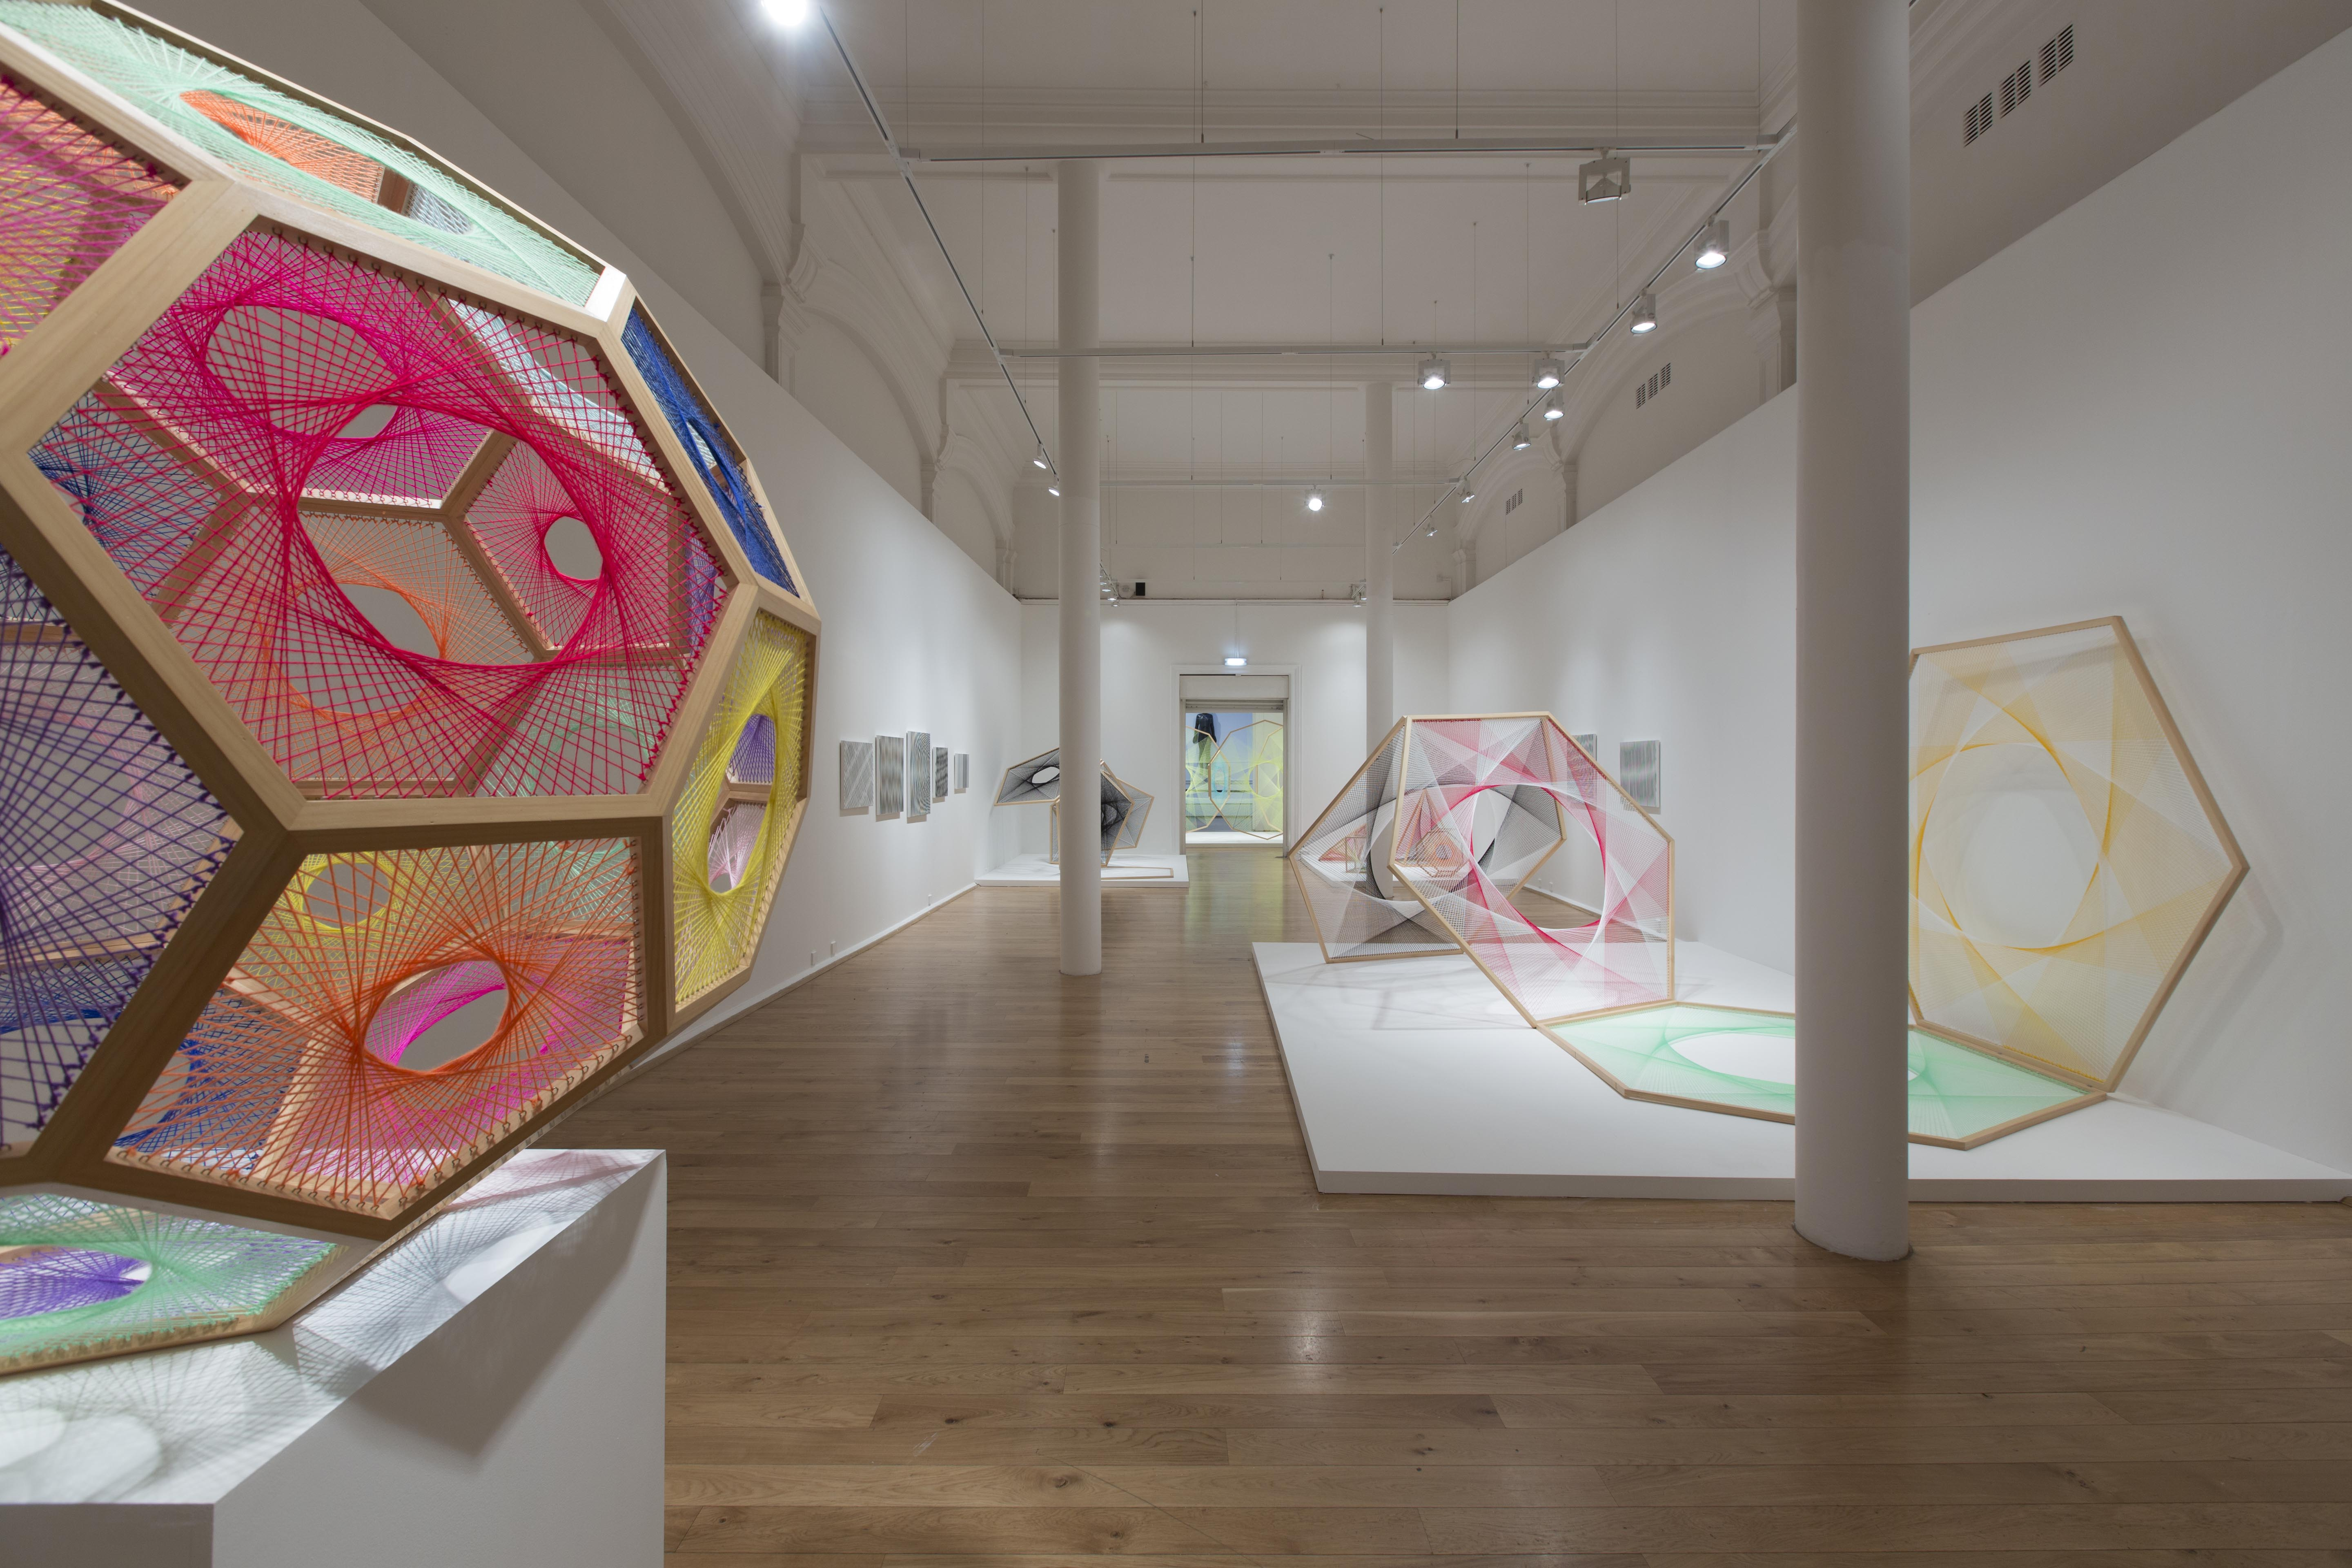 Nike savvas liberty and anarchy leeds art gallery for Online art galleries reviews